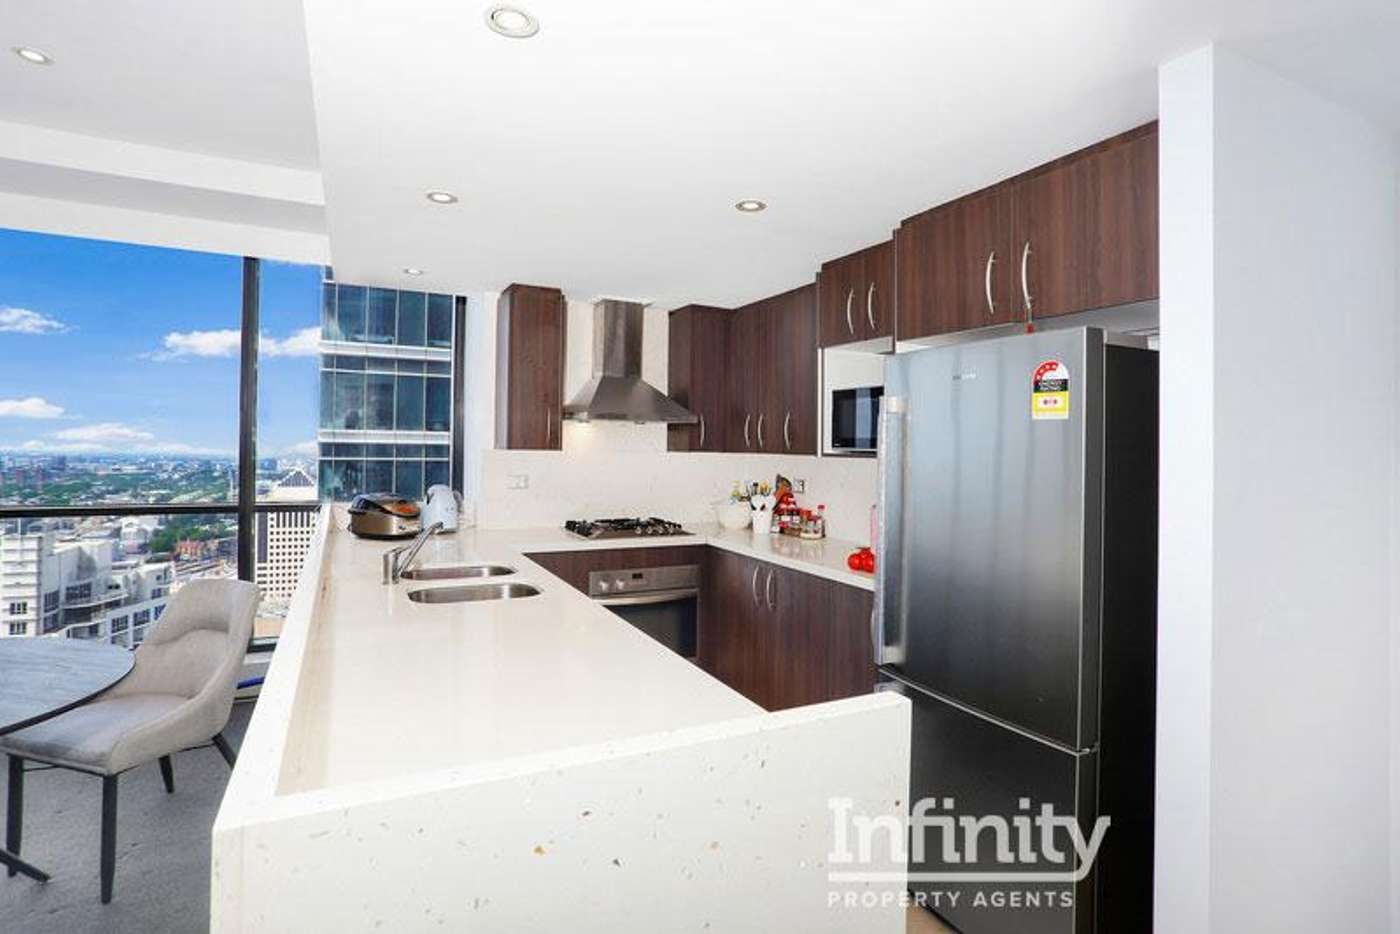 Main view of Homely apartment listing, 5503/91 Liverpool Street, Sydney NSW 2000